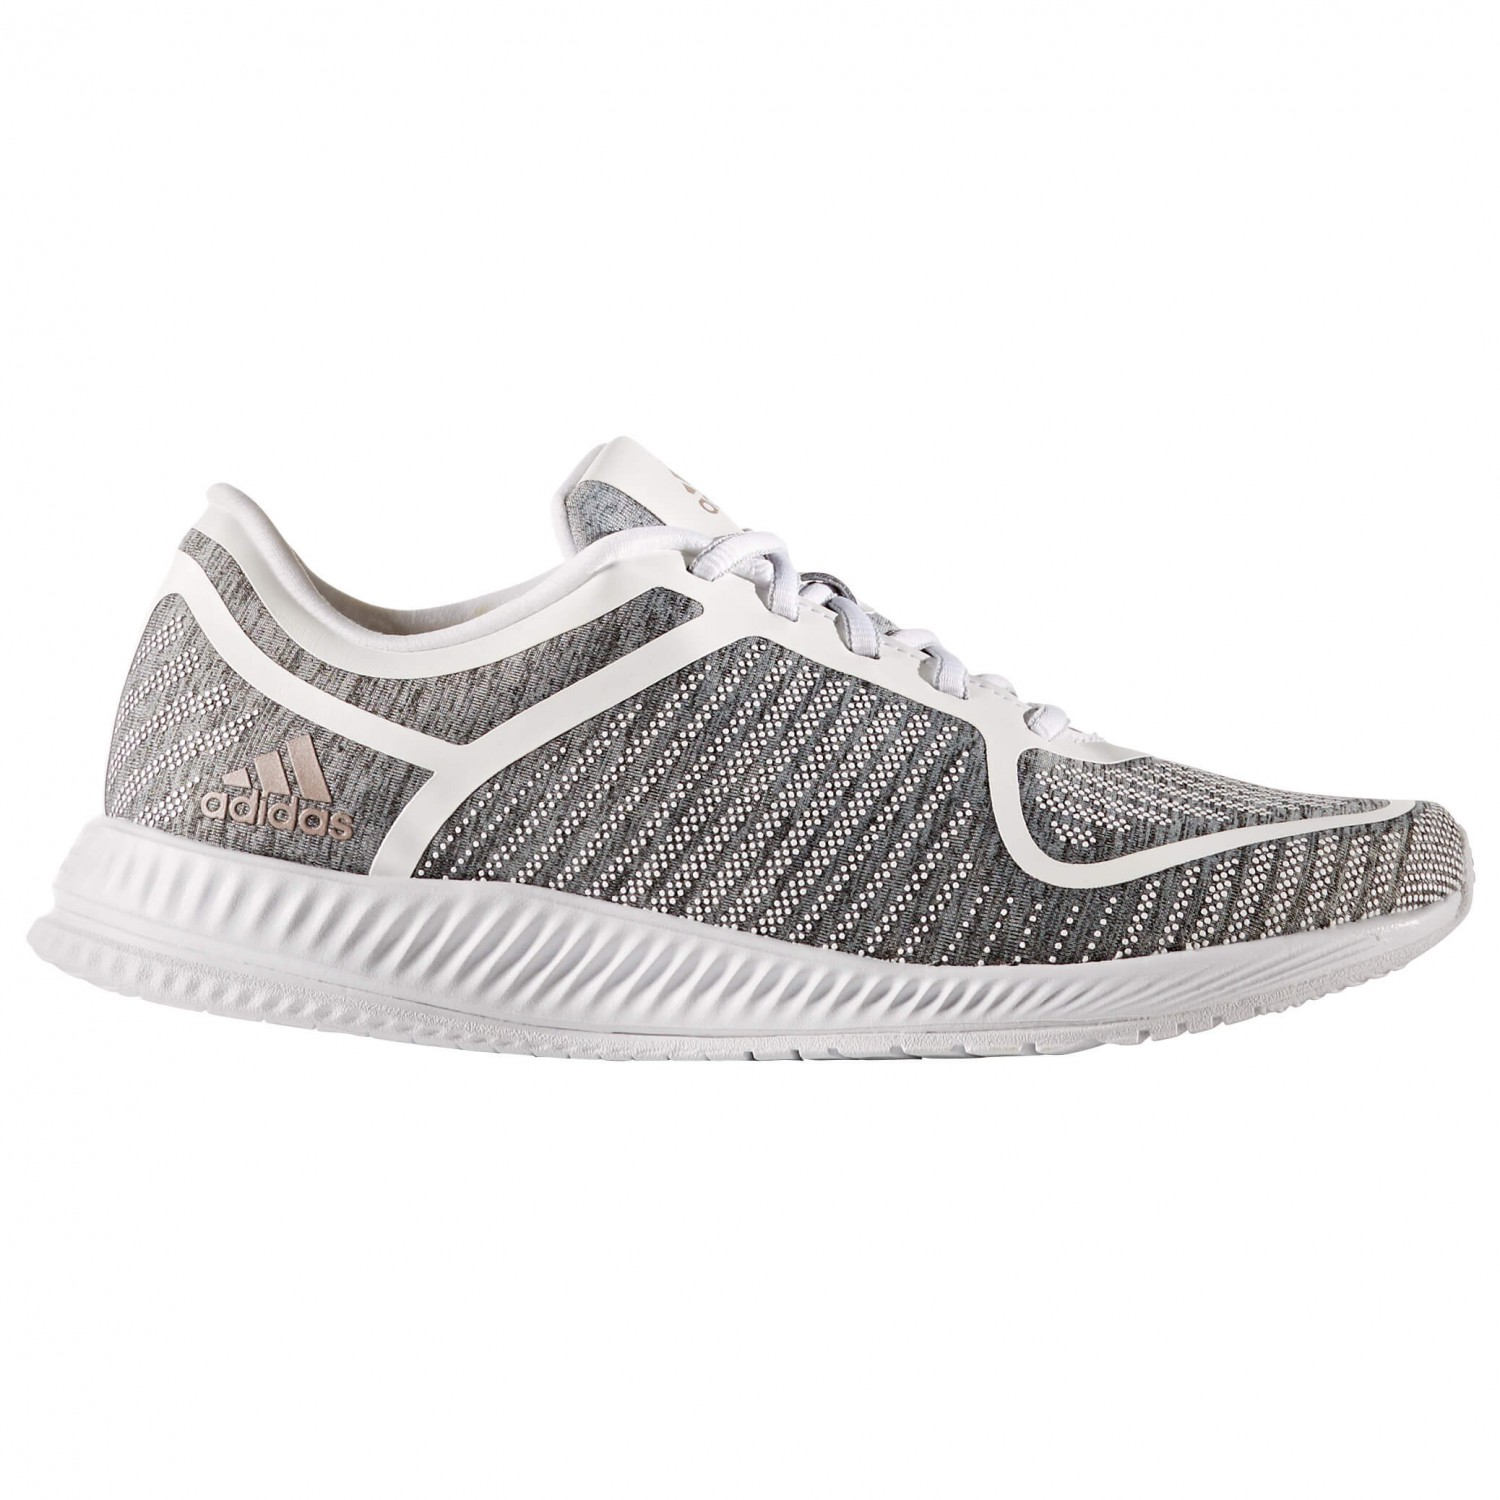 Chaussures Ftwr Bounce VapMet Adidas Grey Women's Heather White5uk Athletics Light f16 De Fitness N8nvmO0w